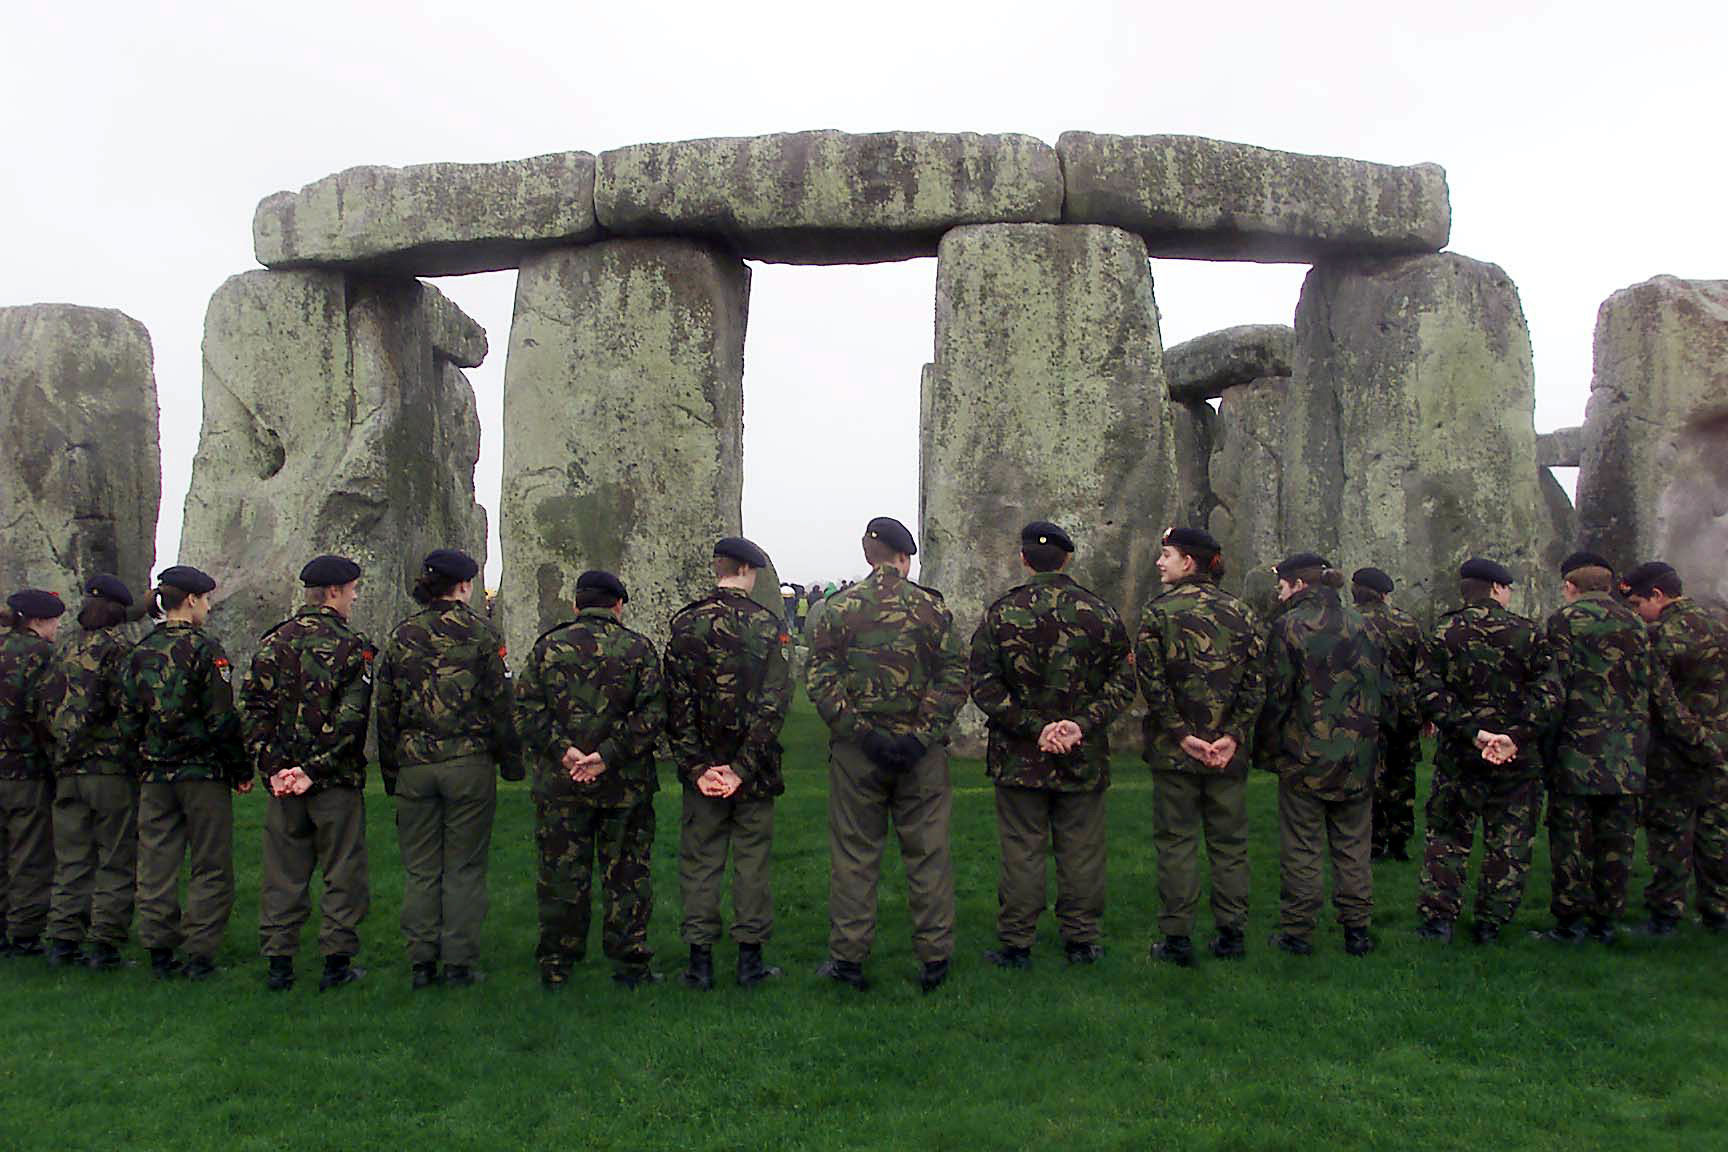 Army cadets and members of the Royal British Legion forming a circle of remembrance at Stonehenge in 2000